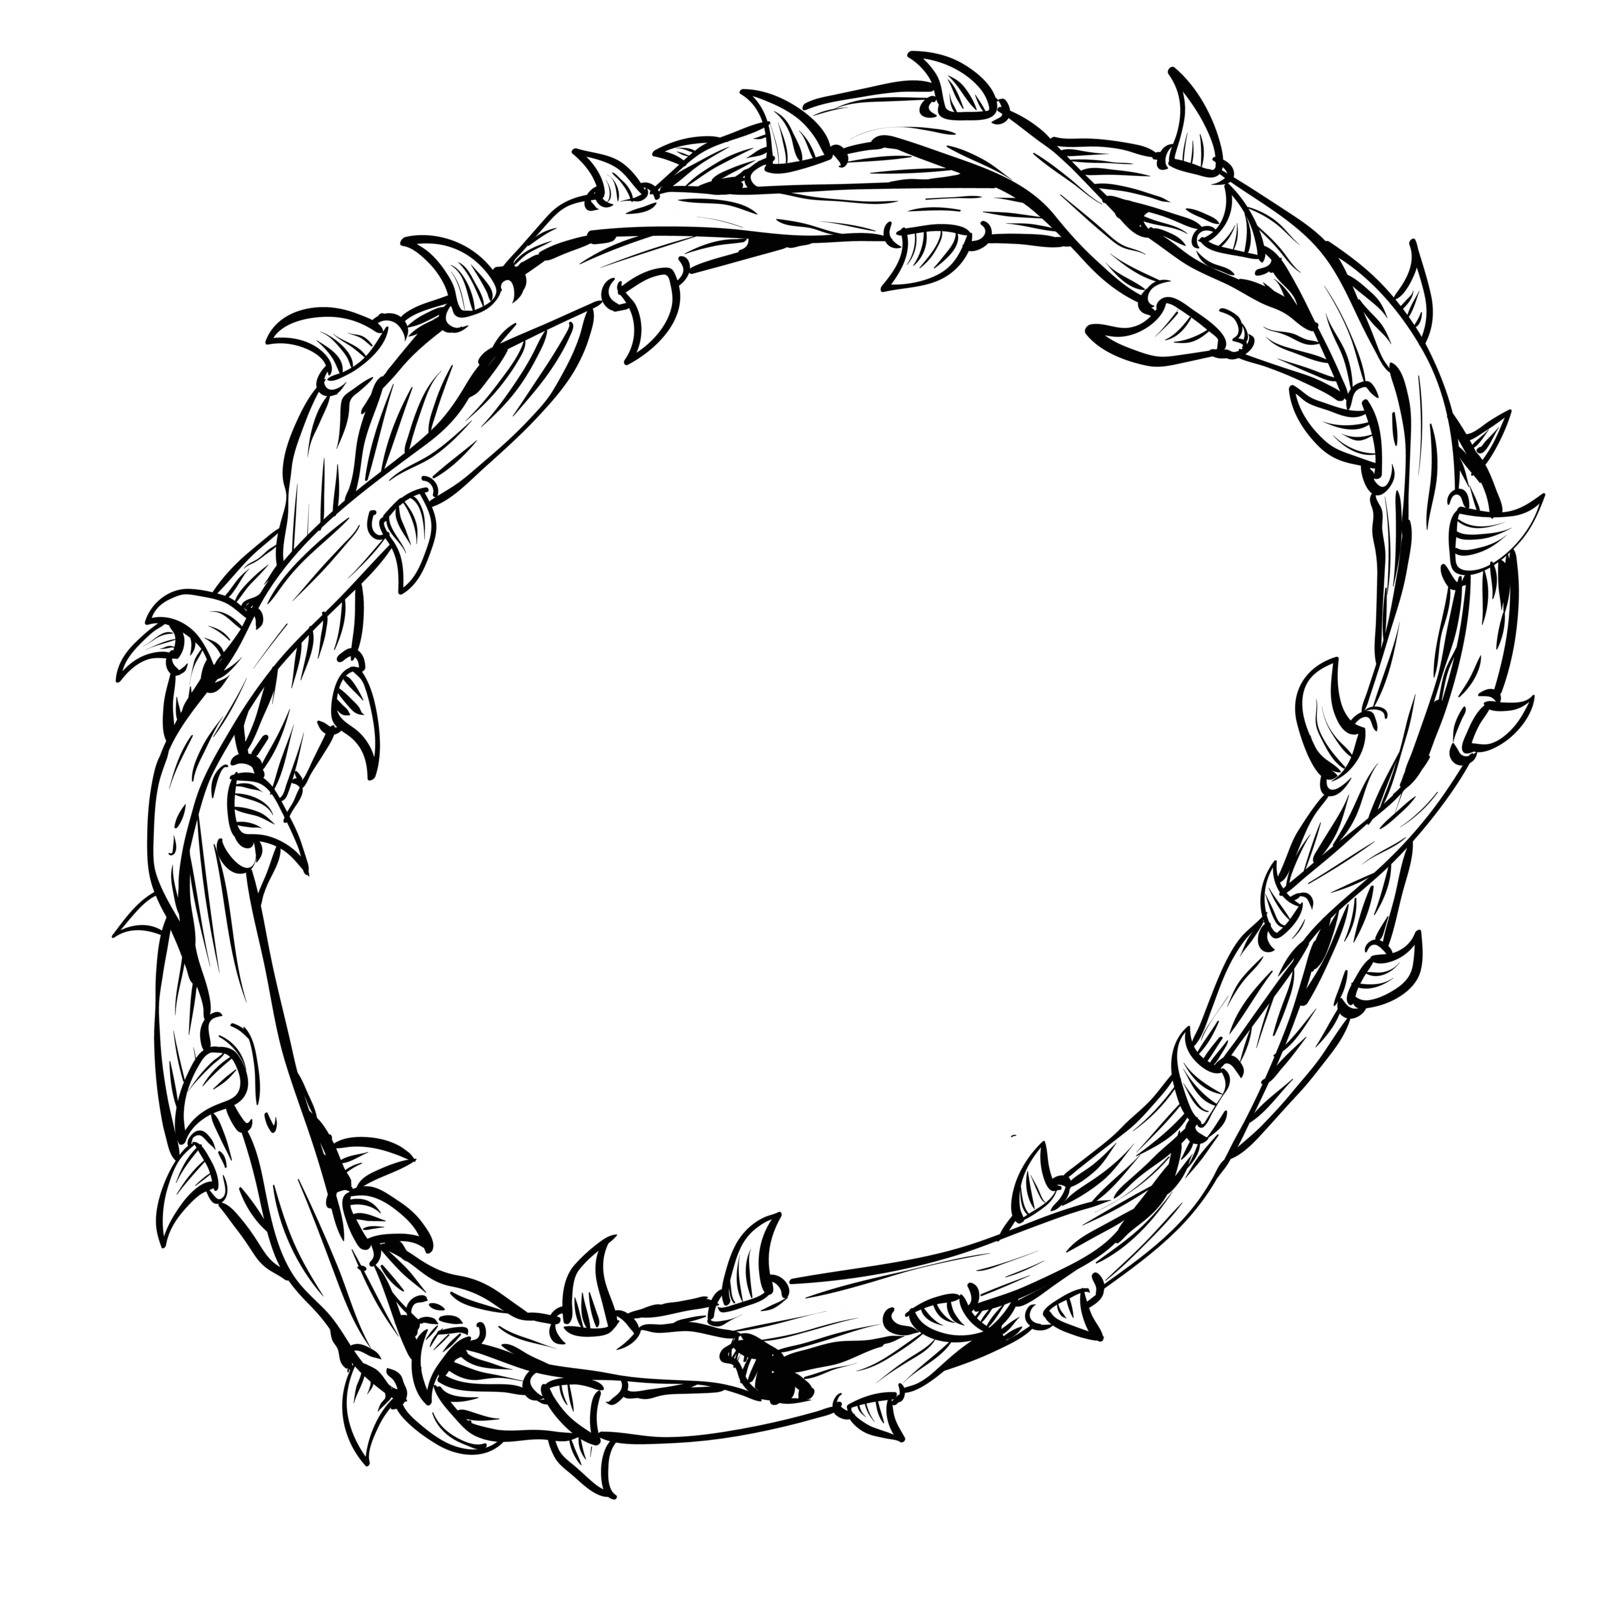 Hand drawing of Thorn Crown, isolated on white background. Black and White simple line Vector Illustration for Coloring Book - Line Drawn Vector